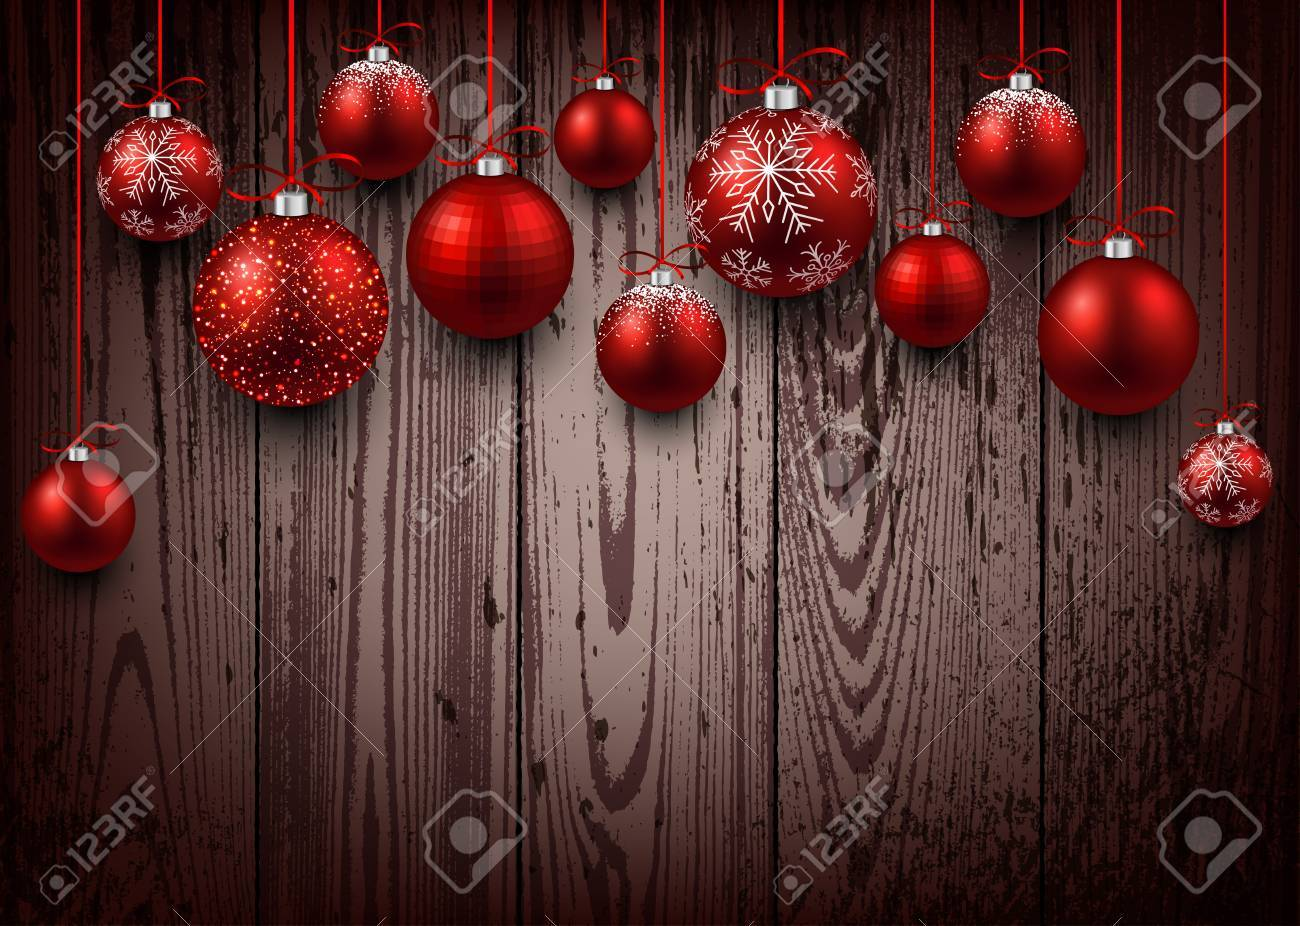 Christmas wooden background with red balls. - 47102760